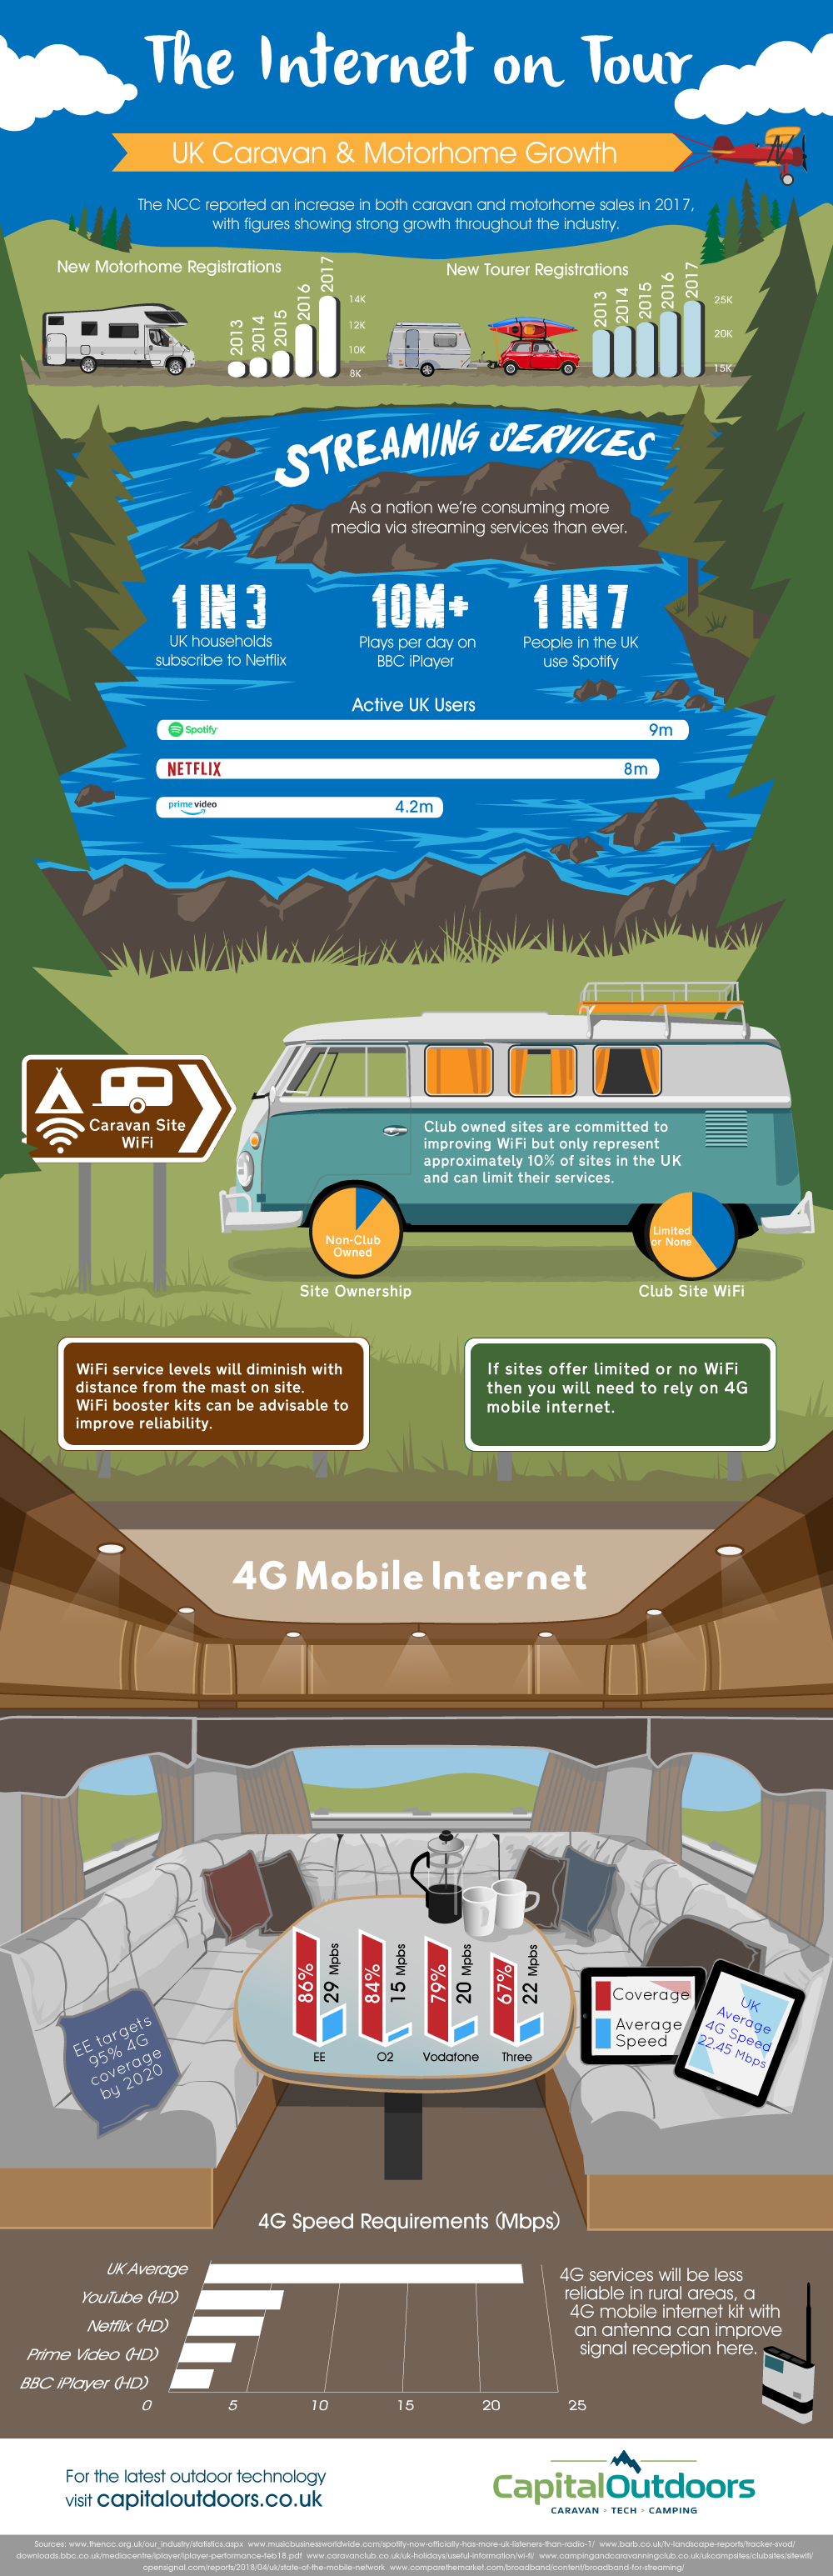 WiFi-On-Tour-Infographic-plaza